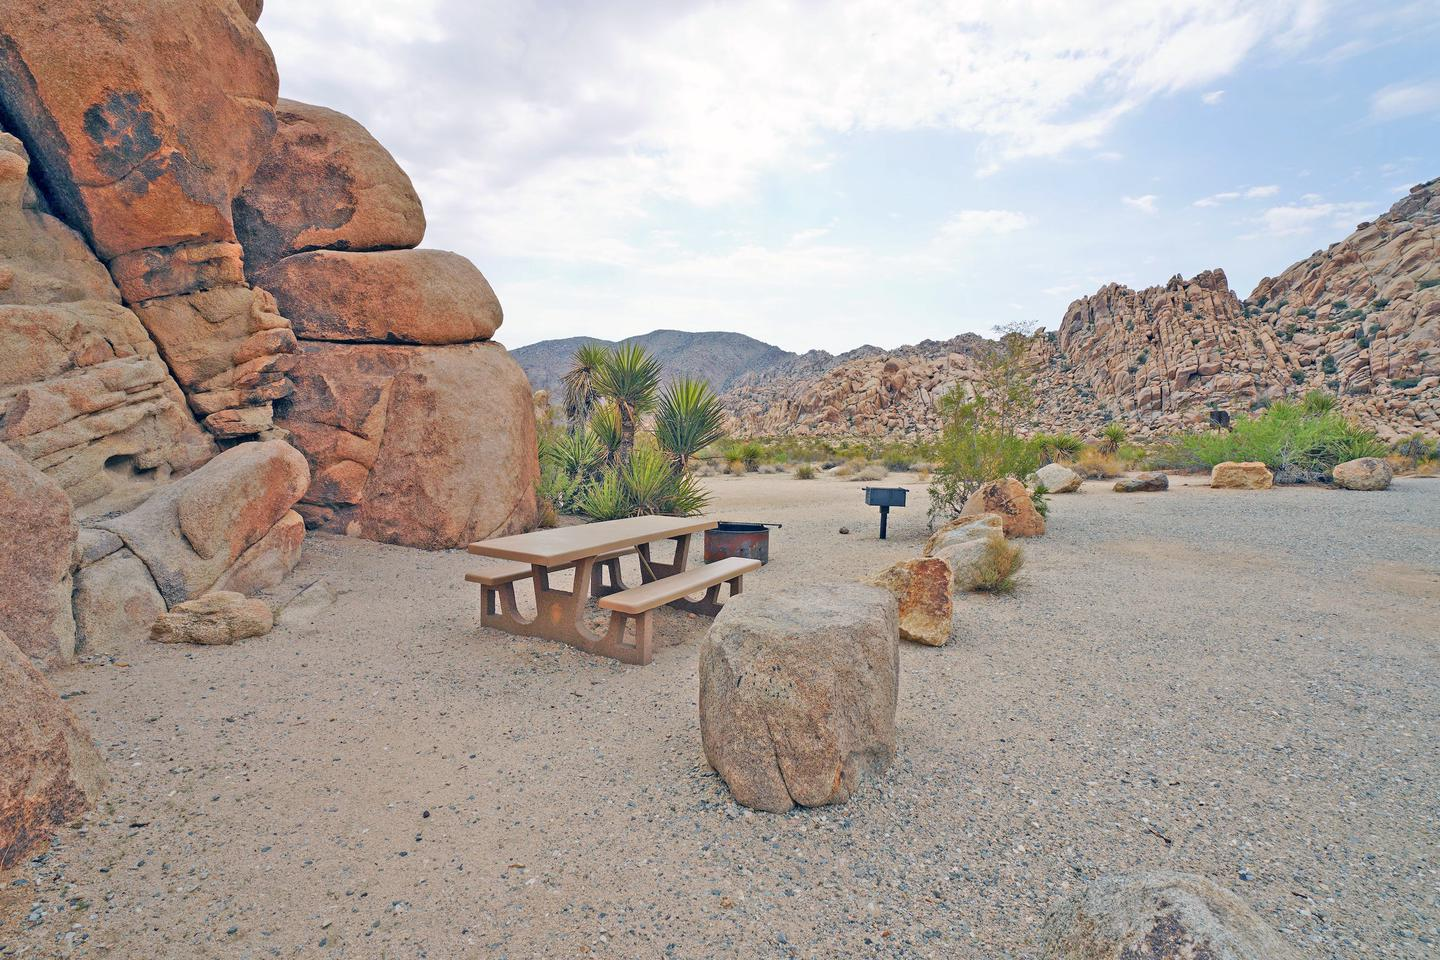 Campsite  with picnic table surrounded by boulders .Campsite.